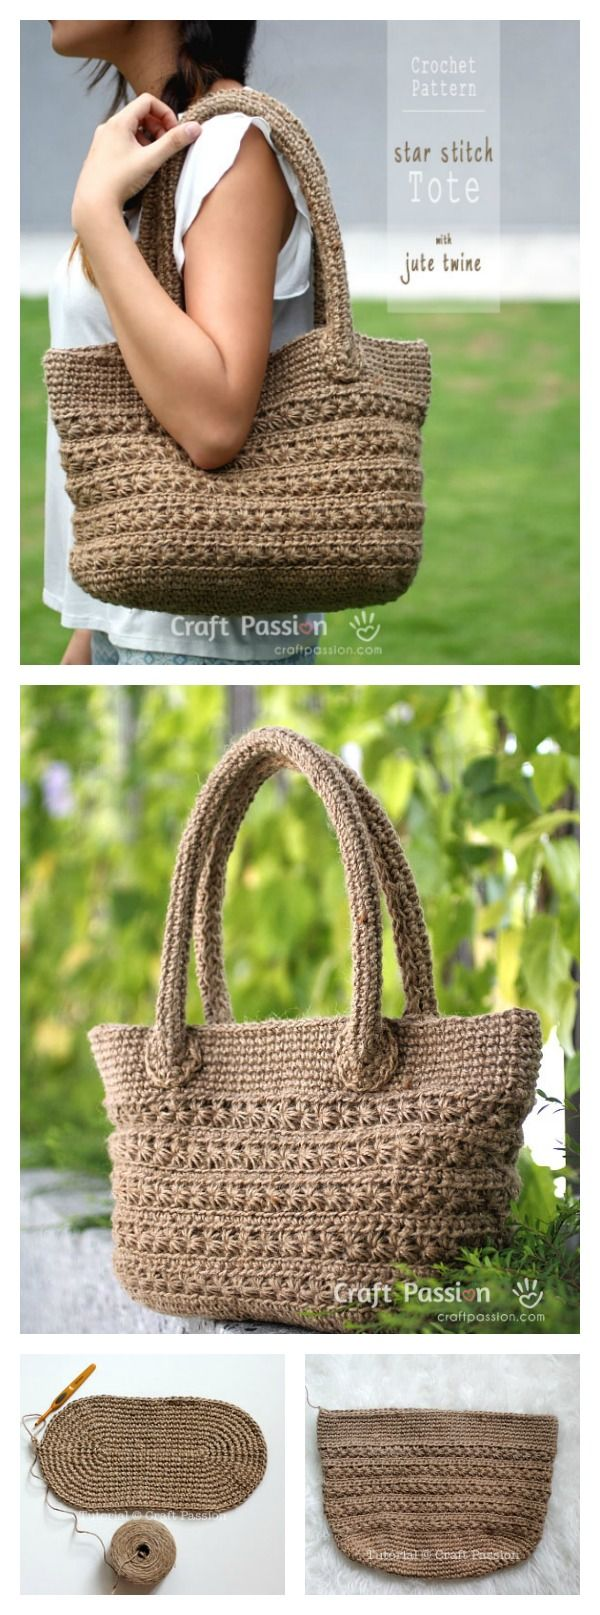 Crochet Star Stitch Tote Free Pattern